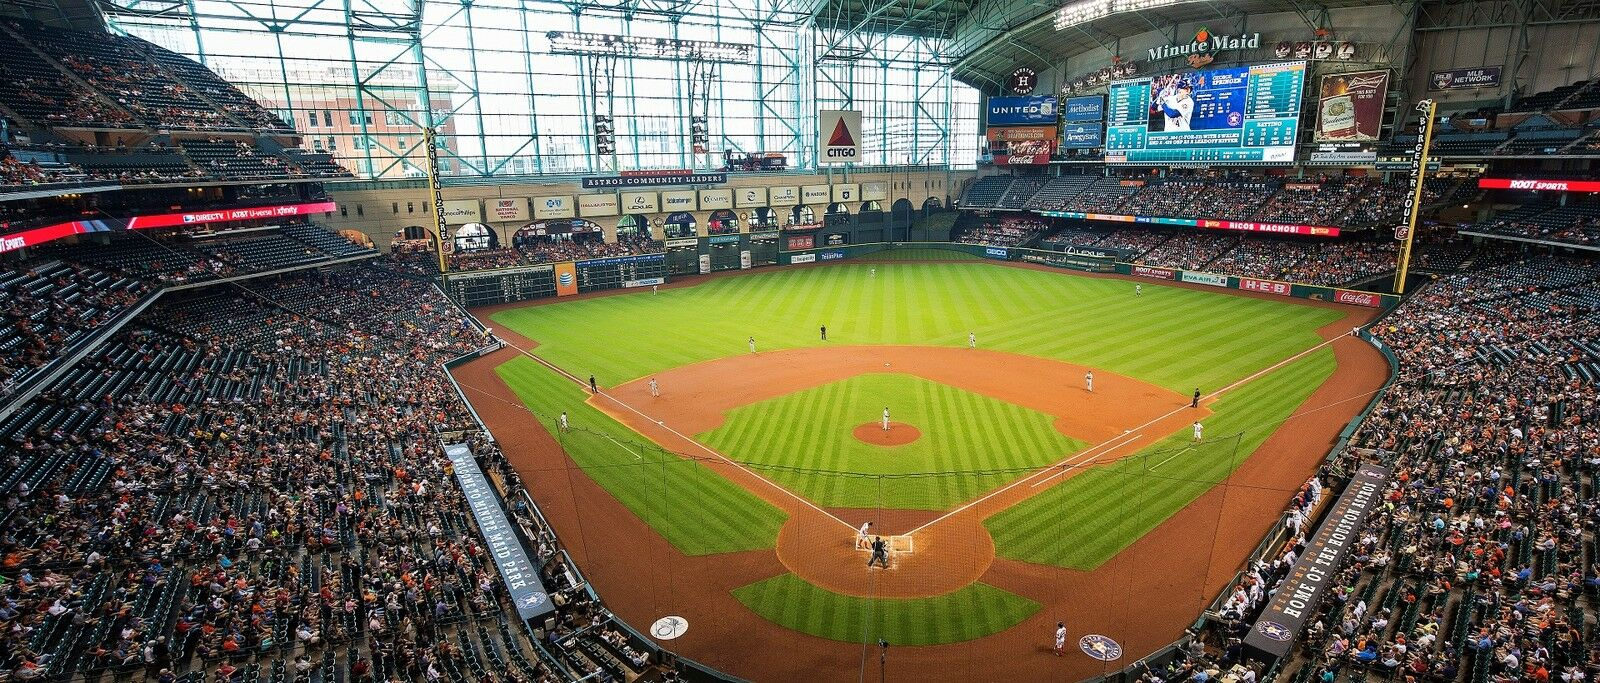 Toronto Blue Jays at Houston Astros Tickets (Bagwell Batting Stance HOF Bobblehead Giveaway)